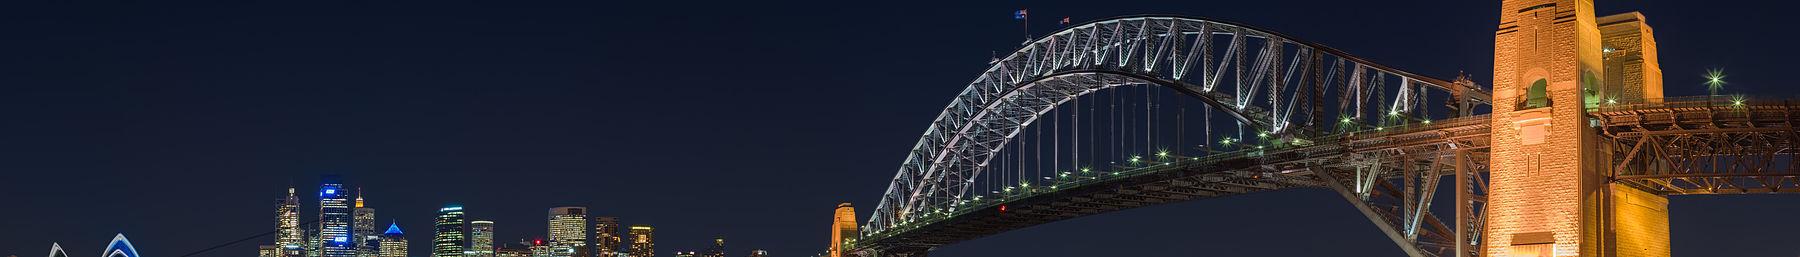 Sydney and the Harbour Bridge at night